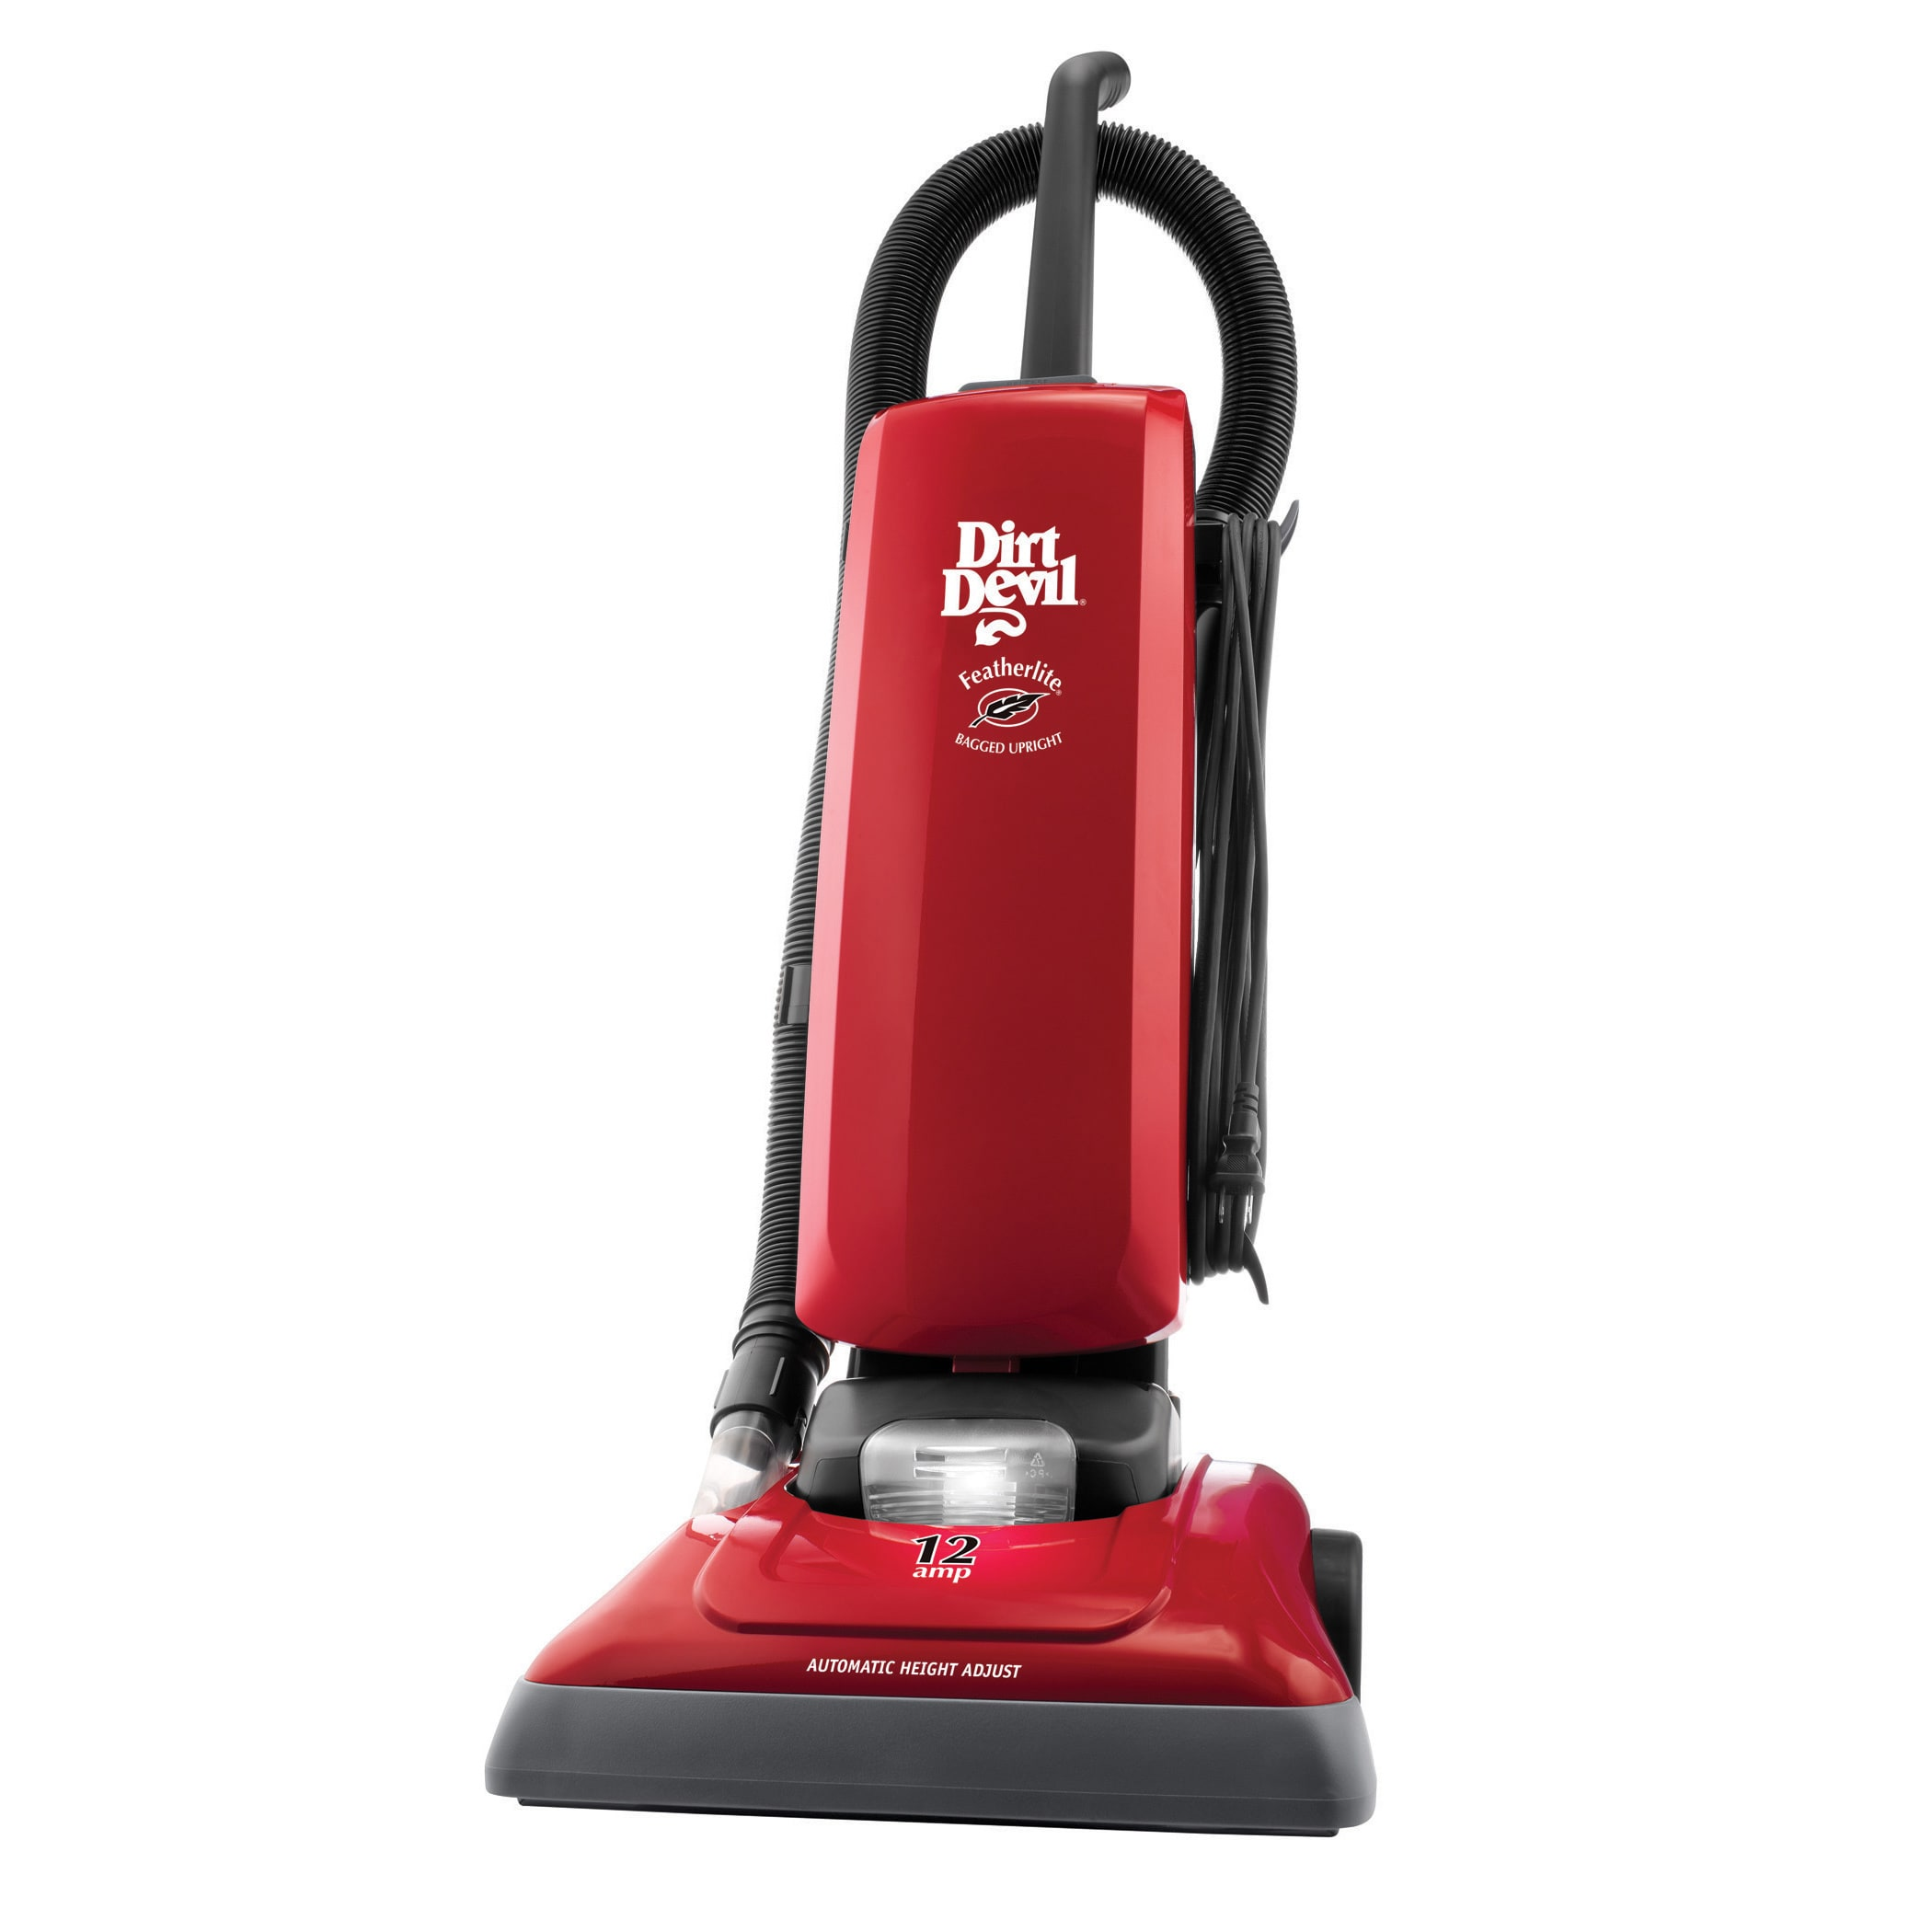 Dirt Devil Toy Vacuum Cleaner Voyeur Rooms